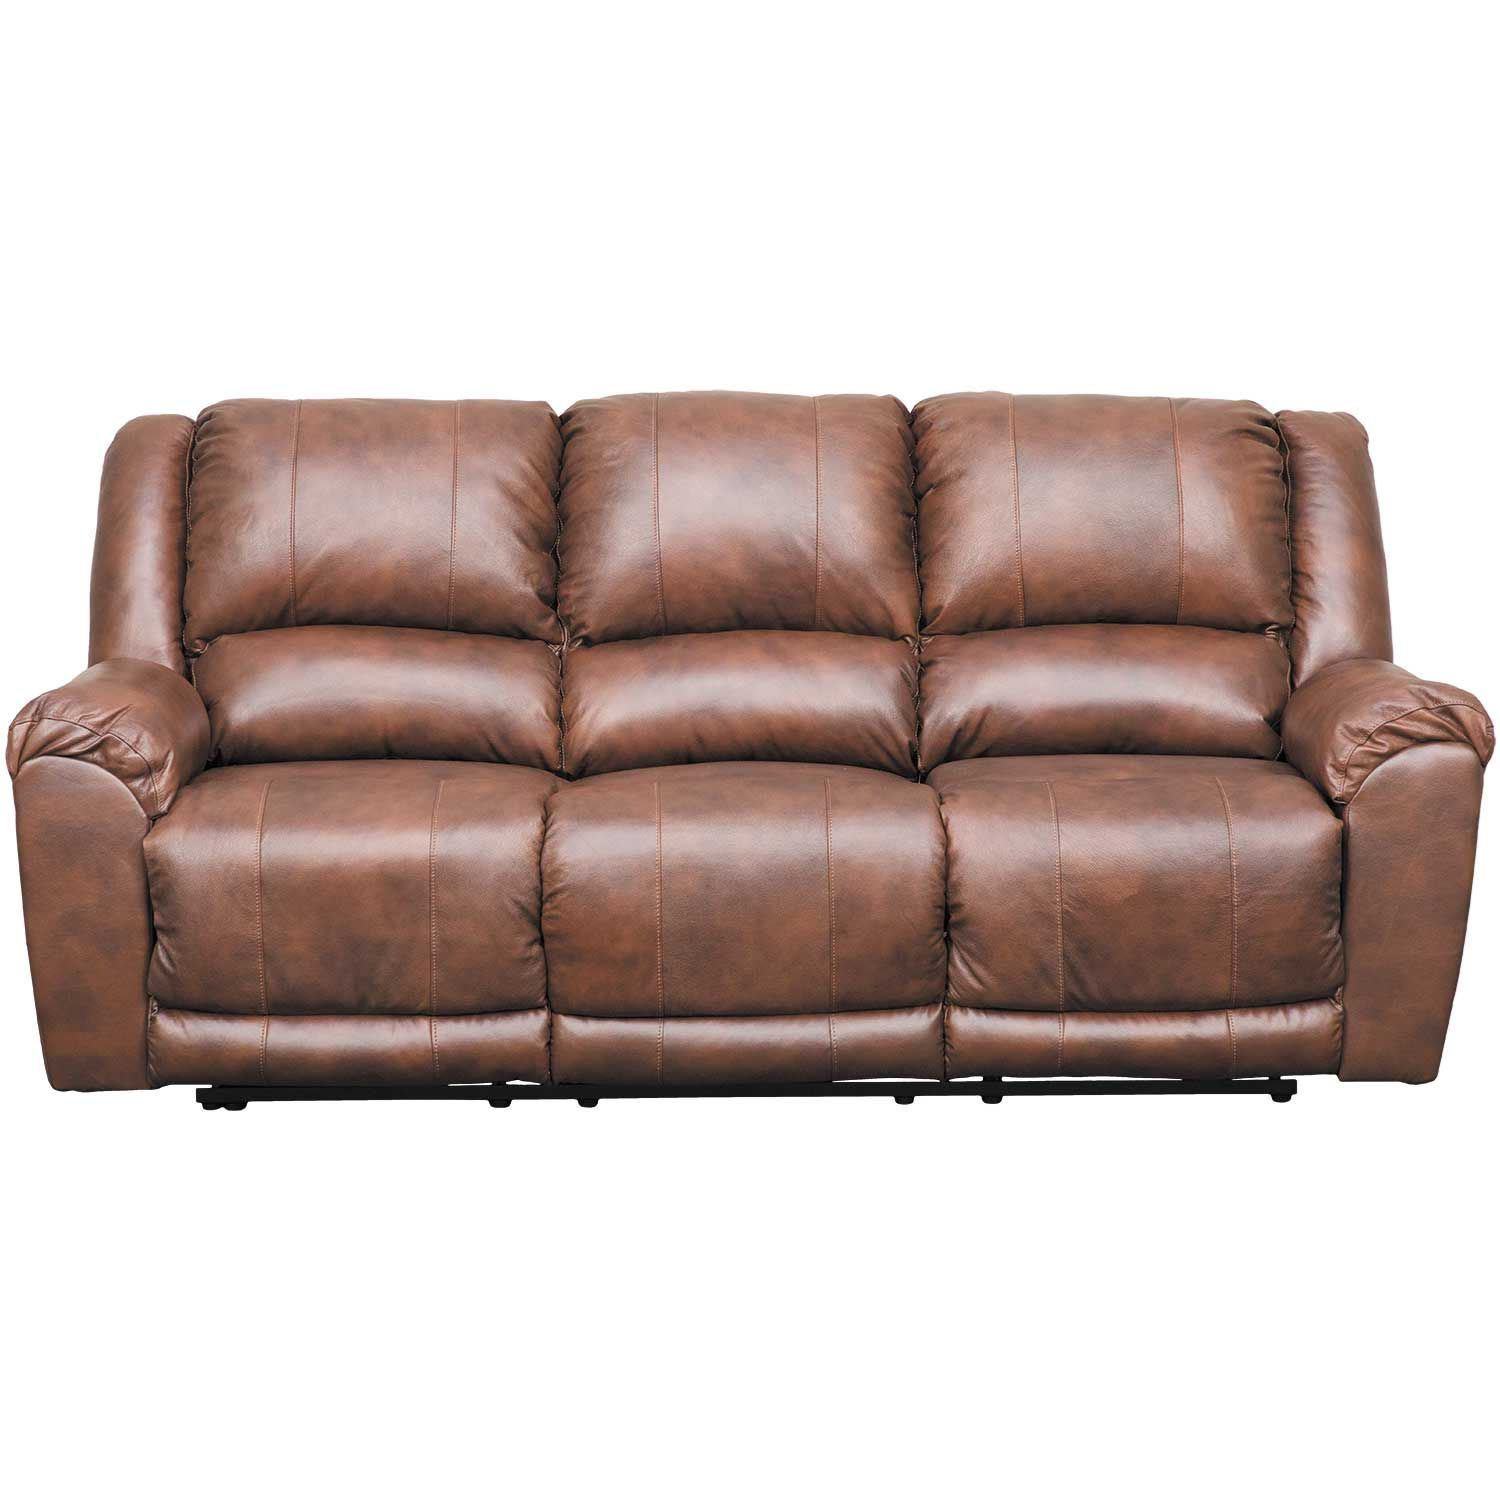 Picture Of Persiphone Brown Leather Reclining Sofa